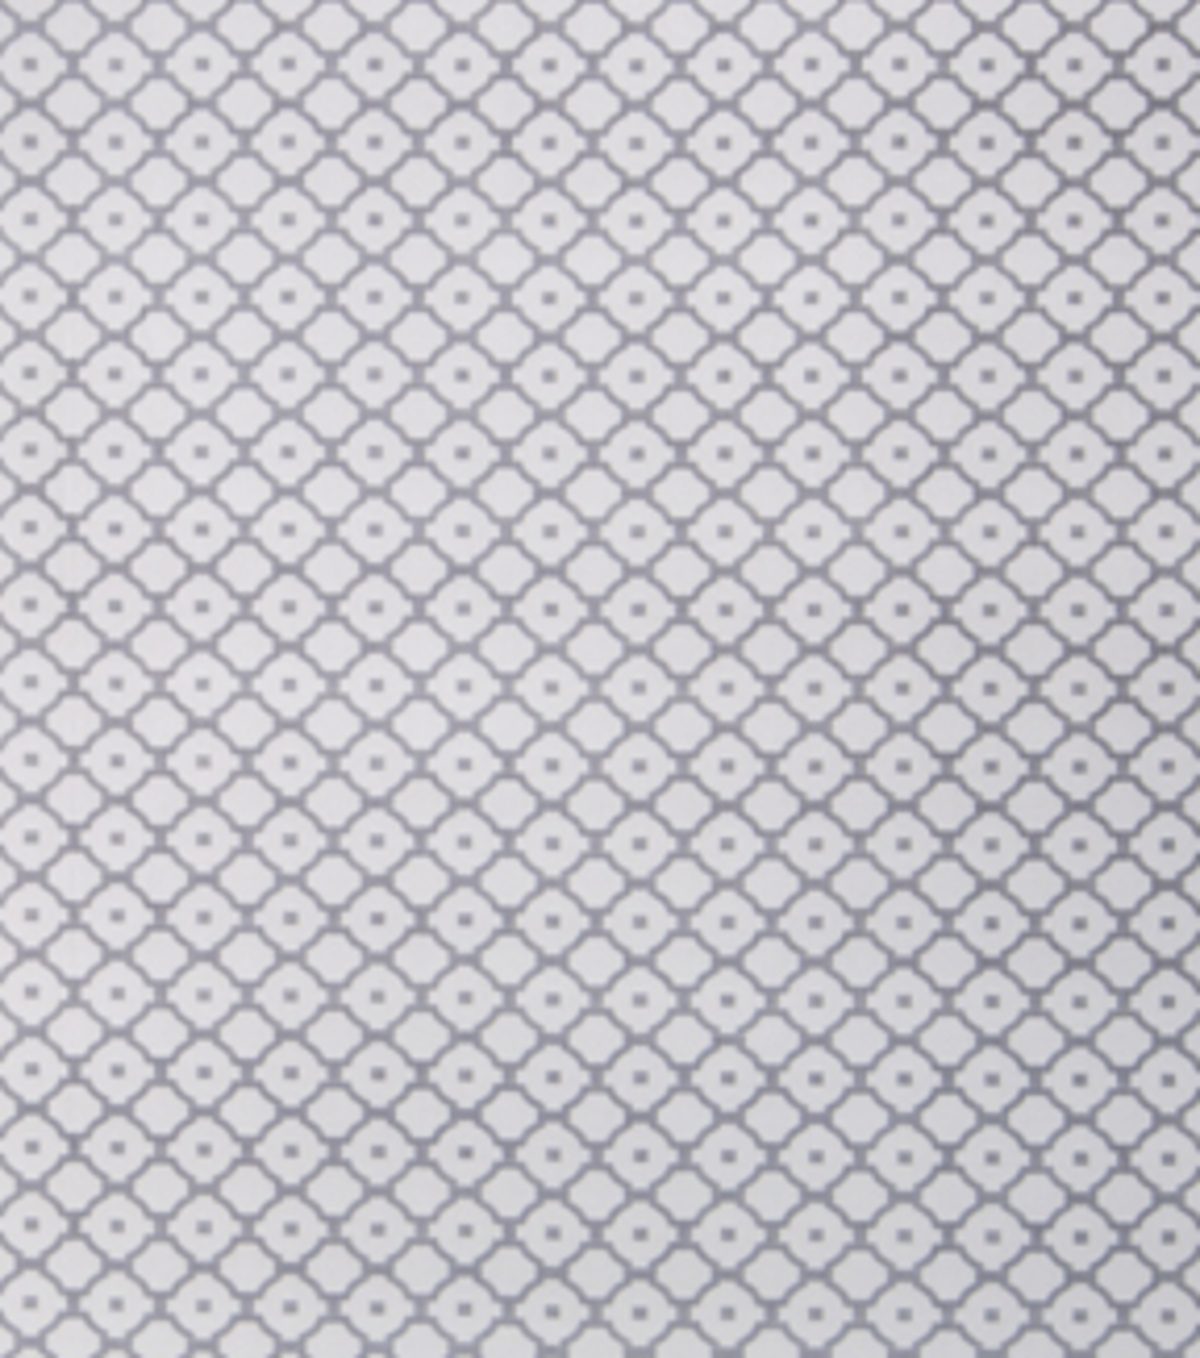 Home Decor 8\u0022x8\u0022 Fabric Swatch-Eaton Square Malroy Platinum